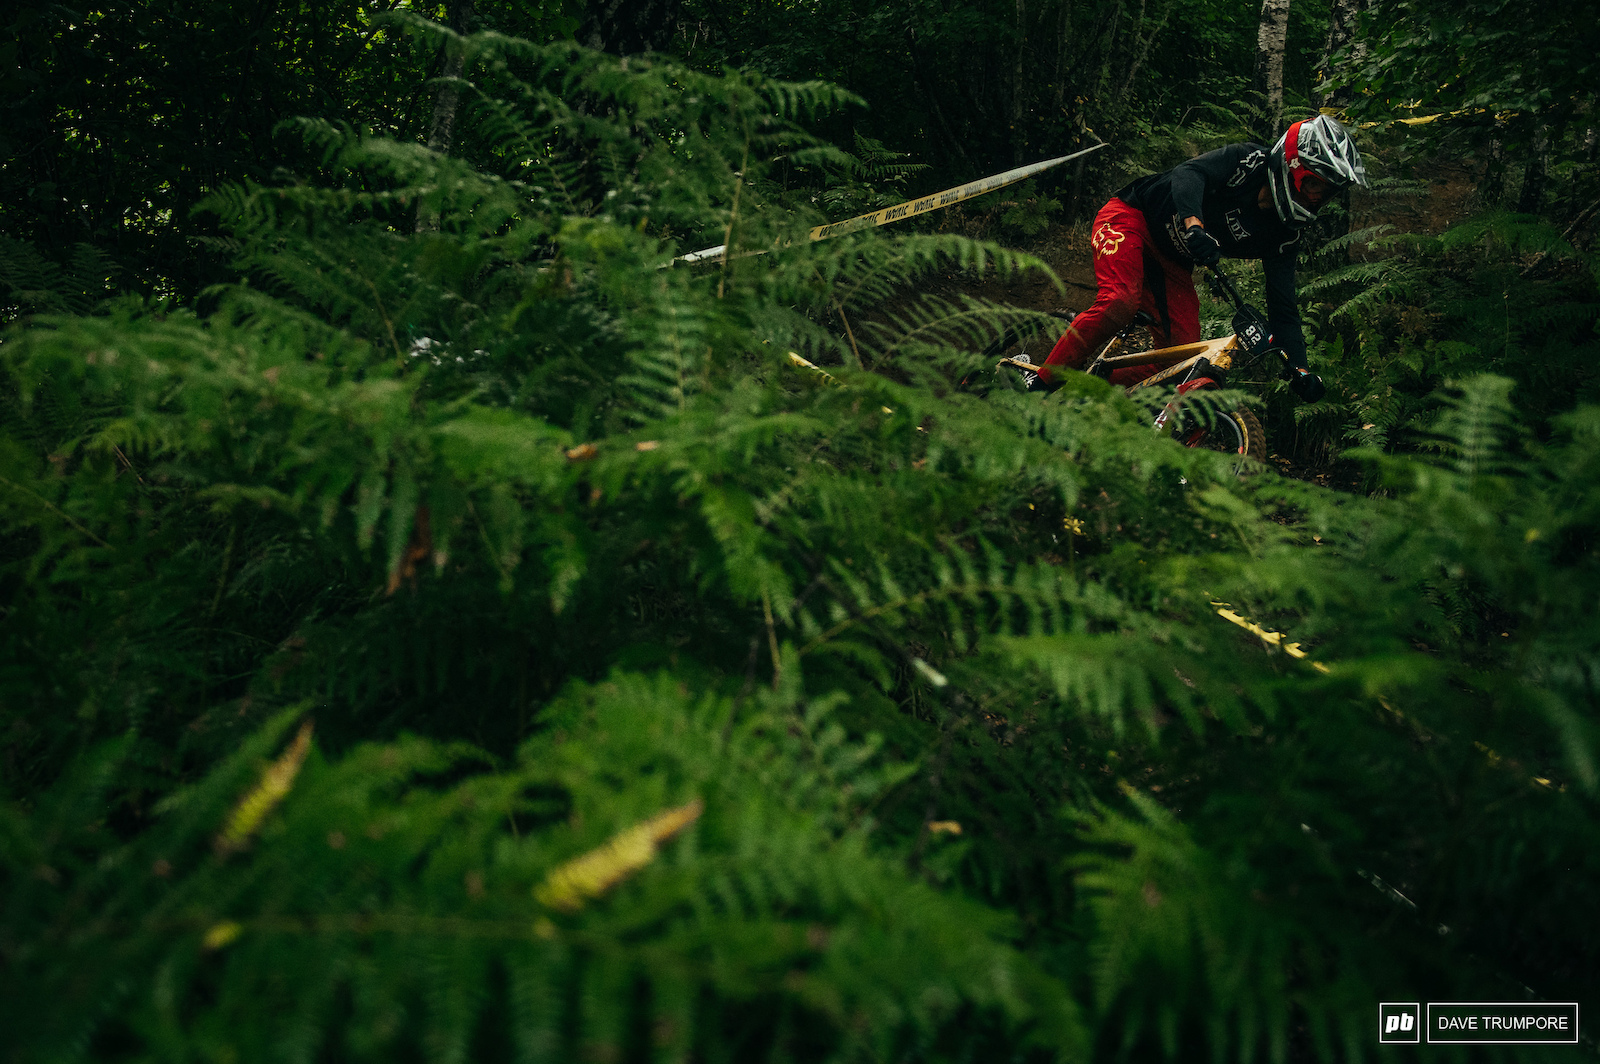 Stage 2 is in the forest amongst the ferns